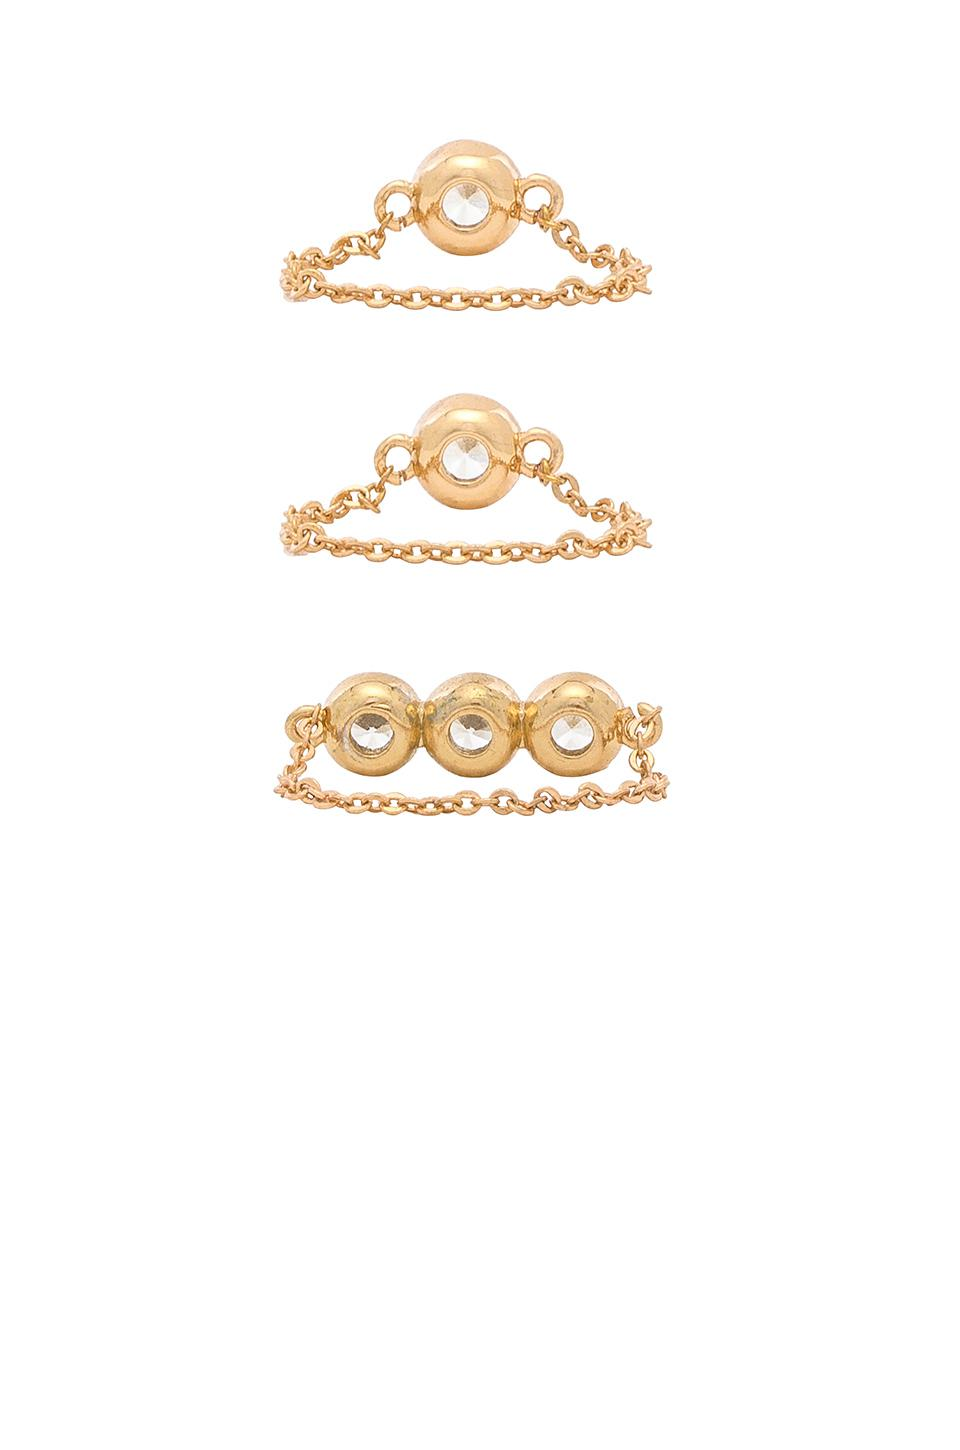 Frasier Sterling Final Touch Ring Trio in Gold (Metallic)